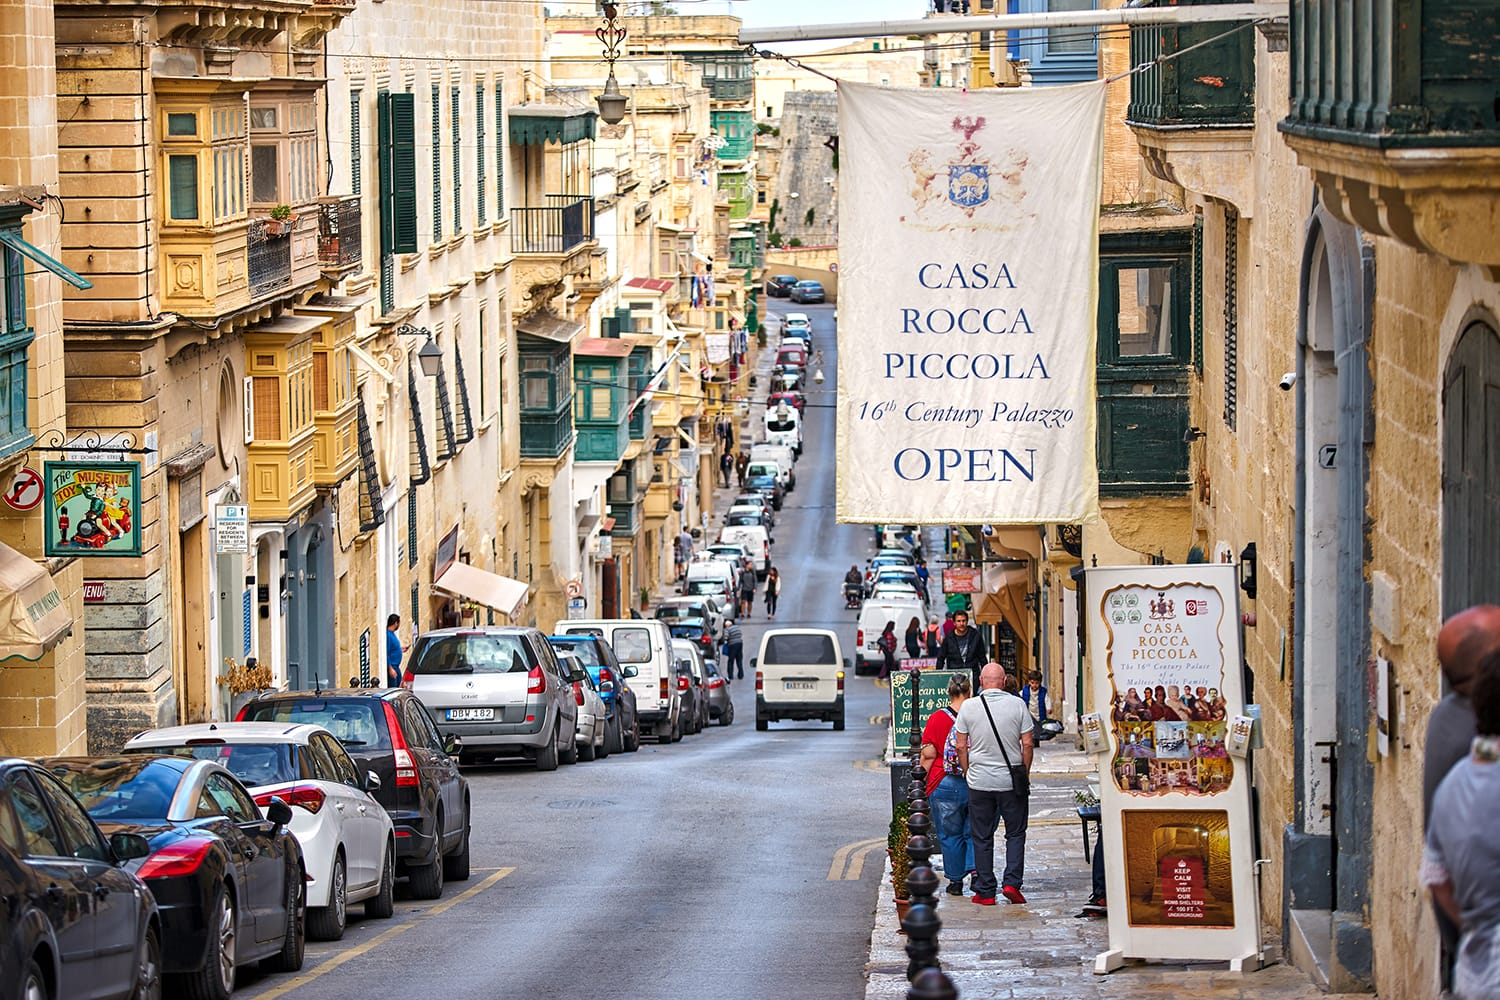 Casa Rocca Piccola museum at the street of Valletta, Malta